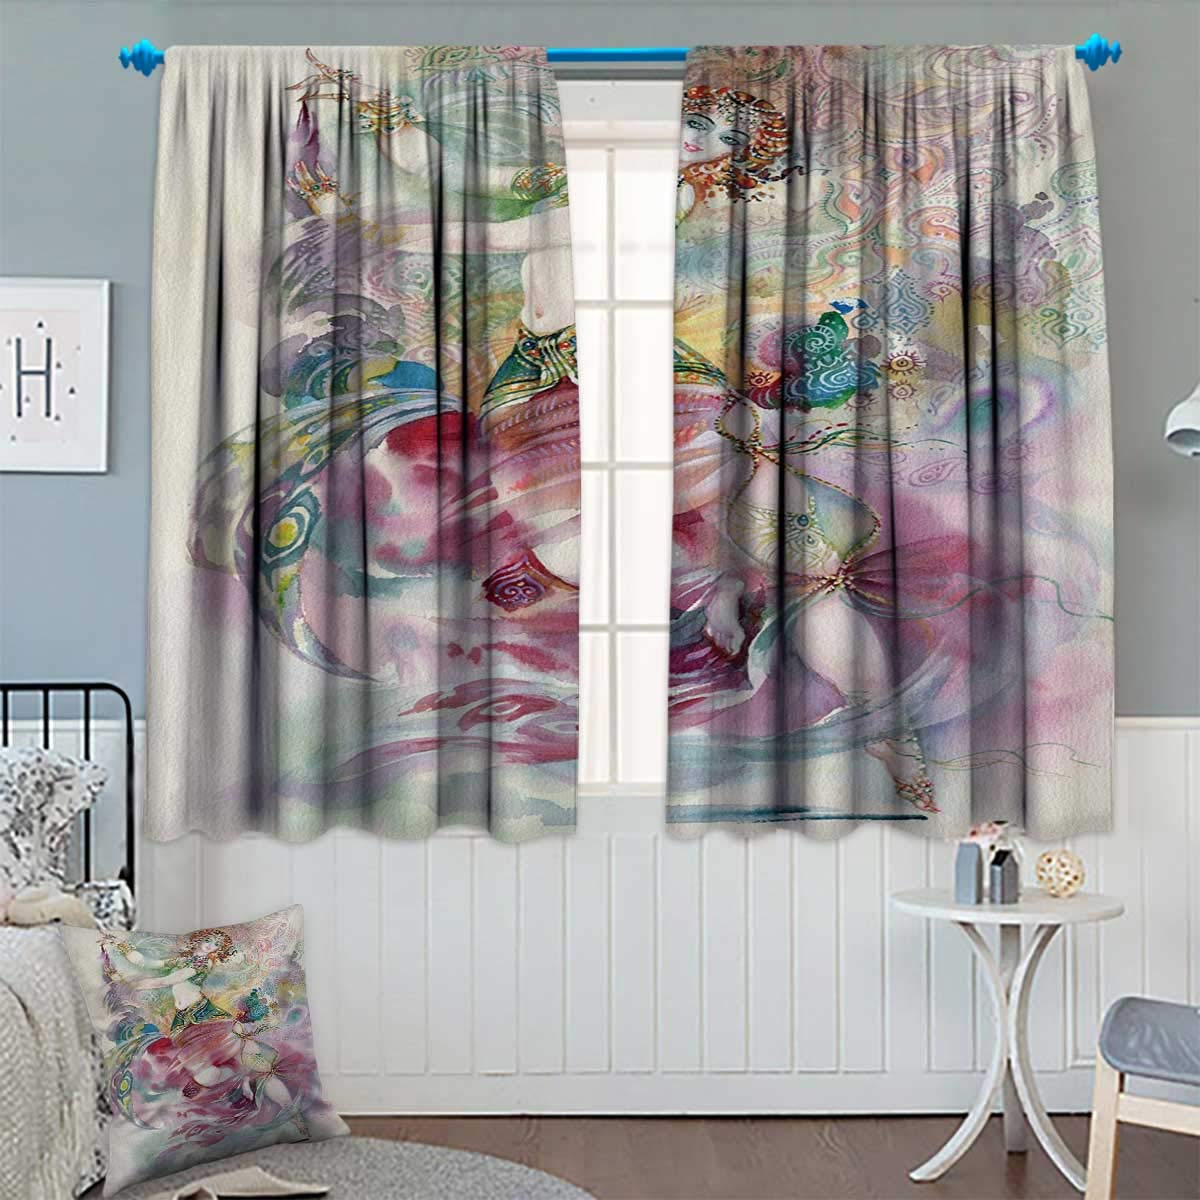 Chaneyhouse Watercolor Waterproof Window Curtain Oriental Dance Theme Young Girl Performing in Traditional Costume Fantasy Figure Blackout Draperies for Bedroom 63'' W x 63'' L Multicolor